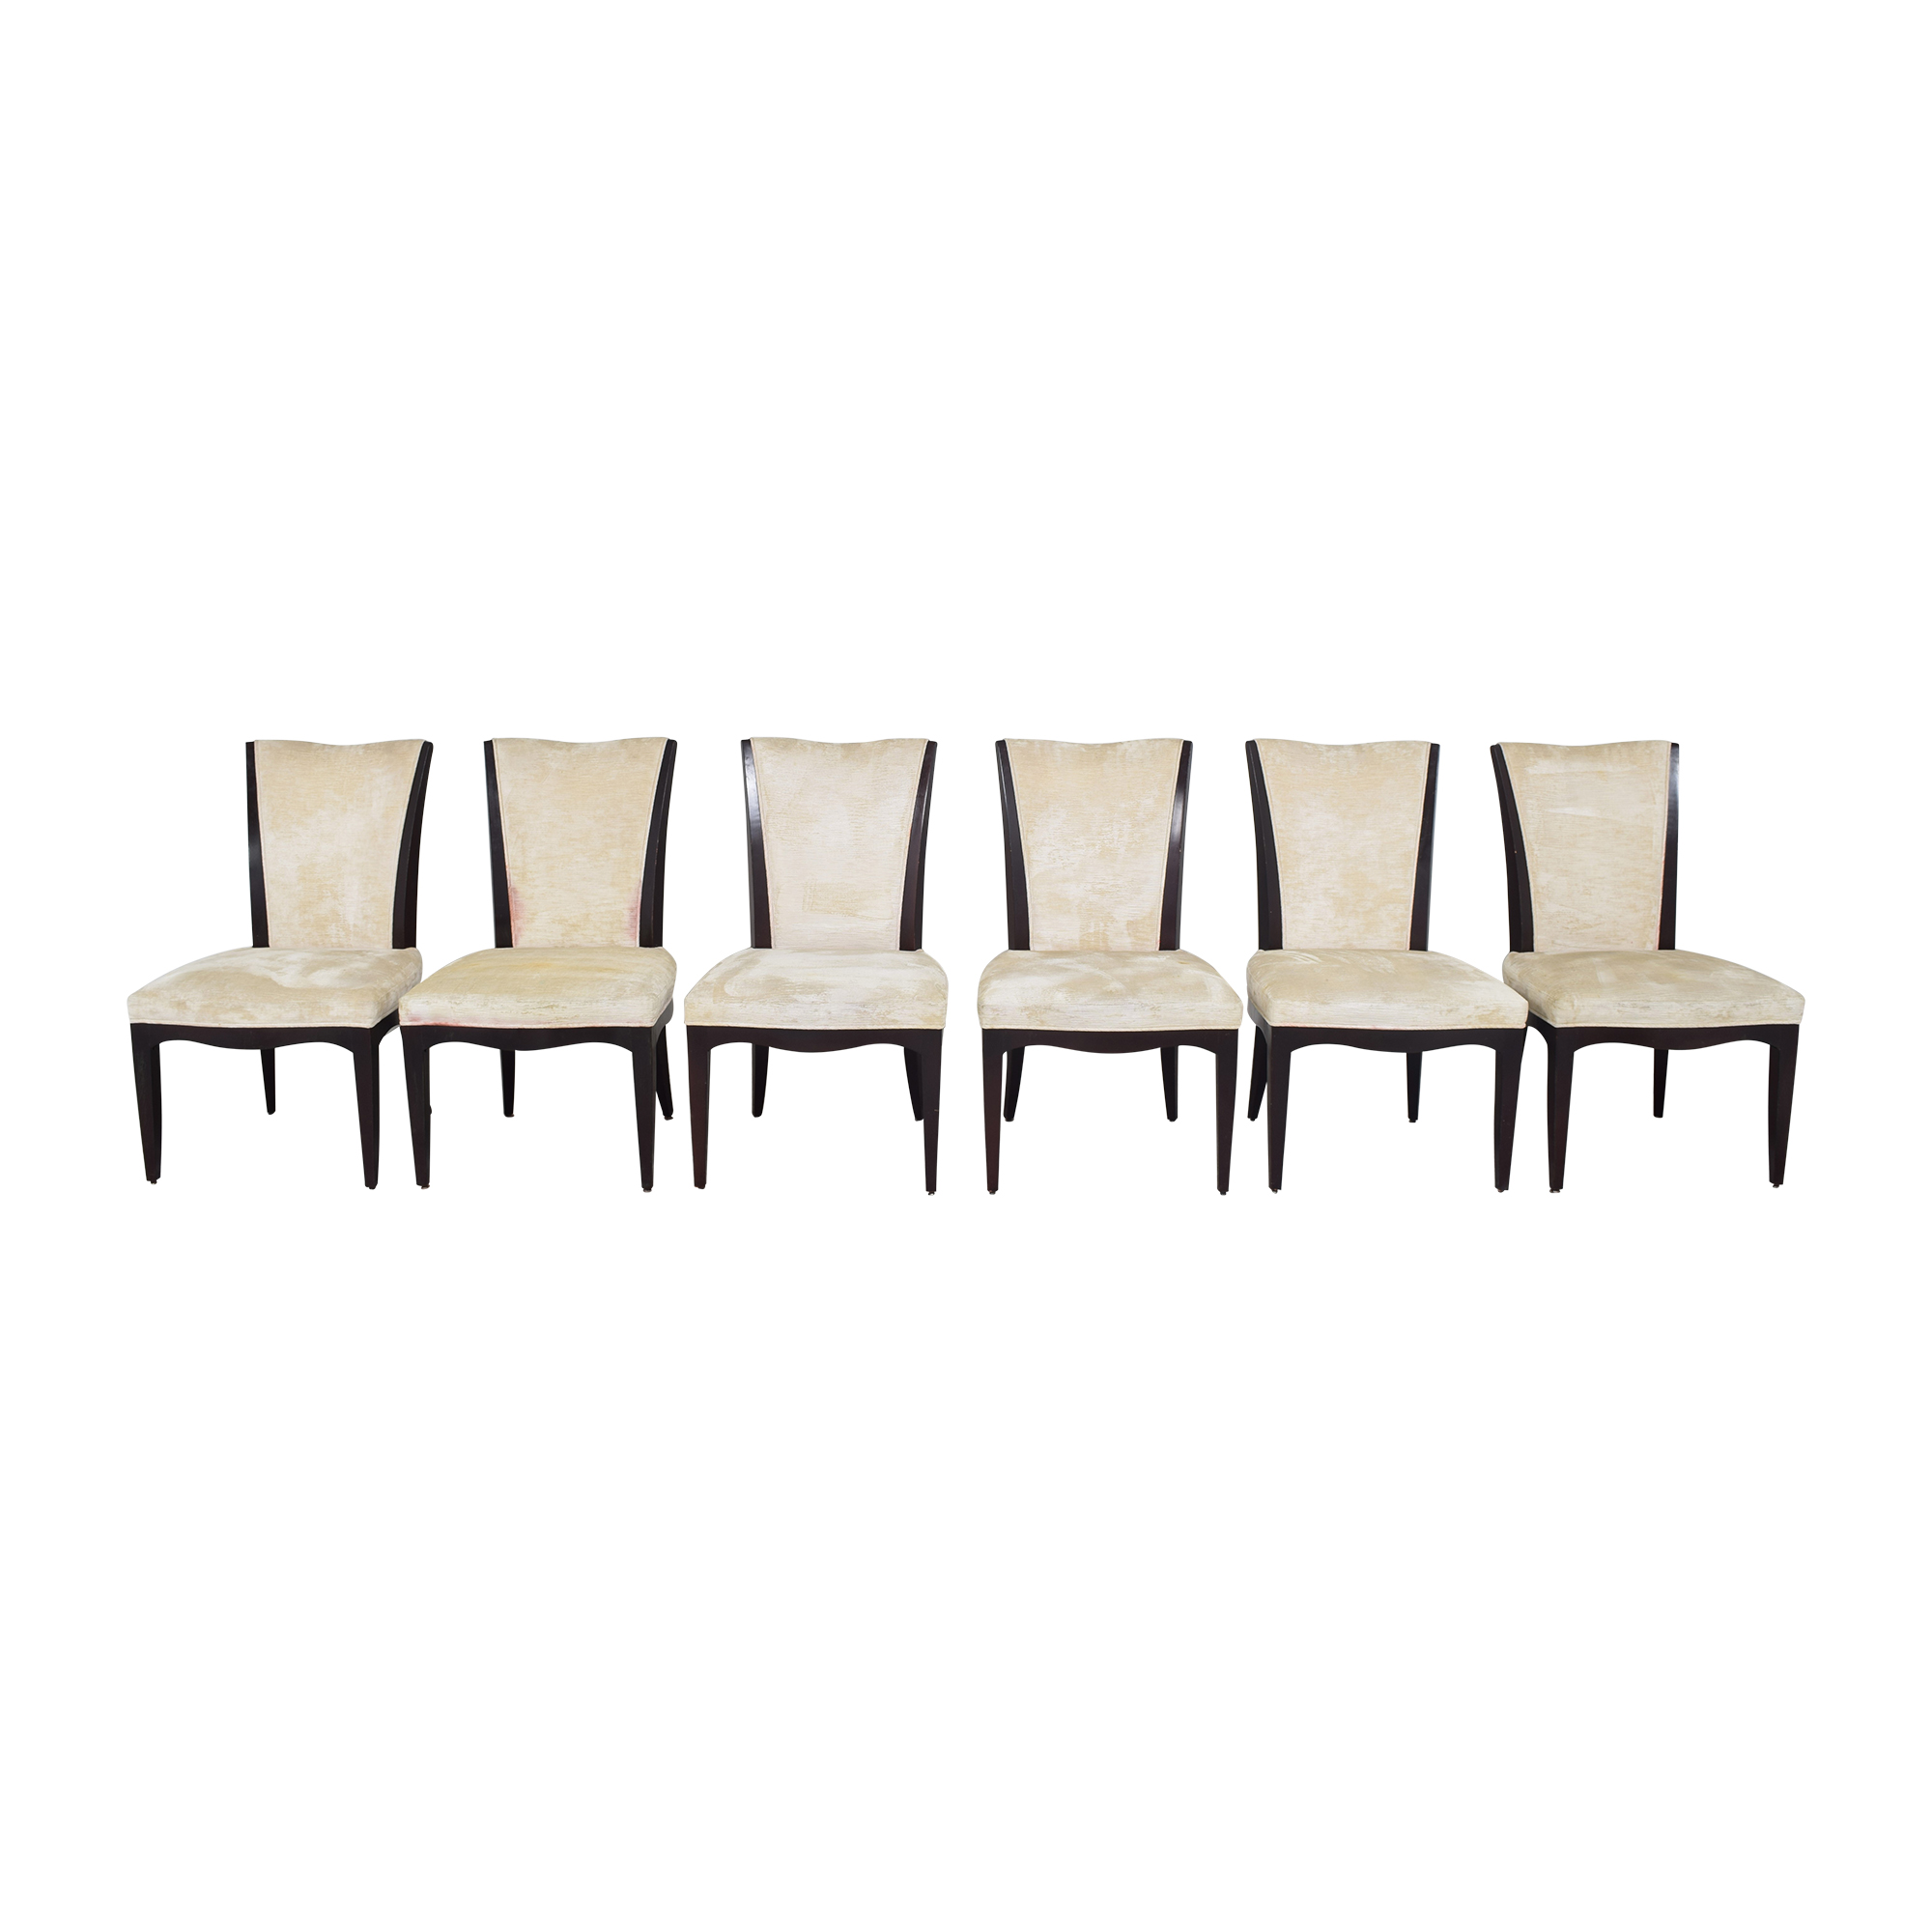 Baker Furniture Baker Furniture Barbara Barry Upholstered Dining Side Chairs nyc